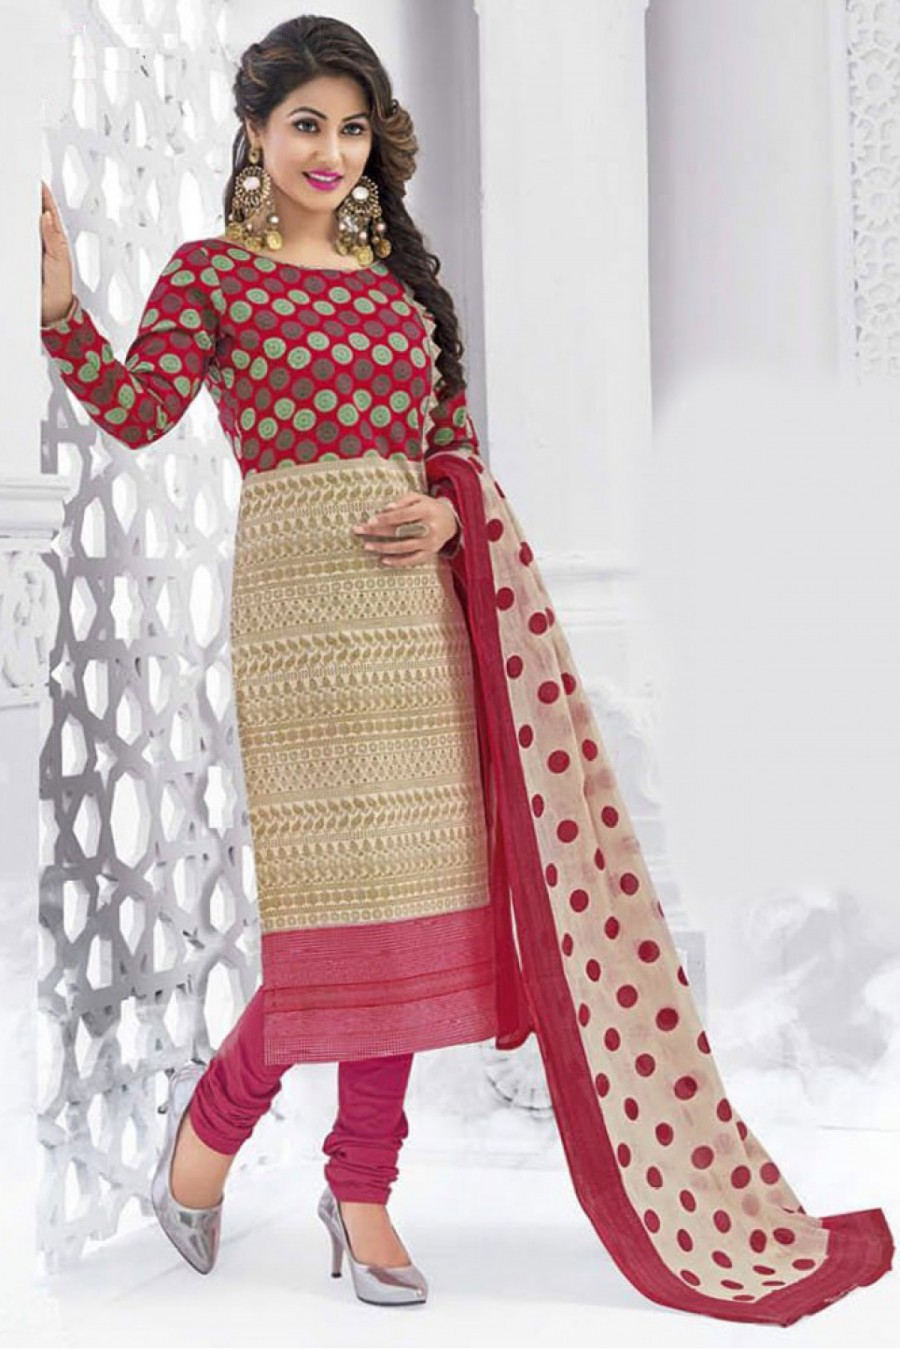 e30b9cd420 Buy Bollywood Hina Khan Pure Cotton Printed Churidar Salwar Kameez in Cream  and Pink Colour Online. View full size